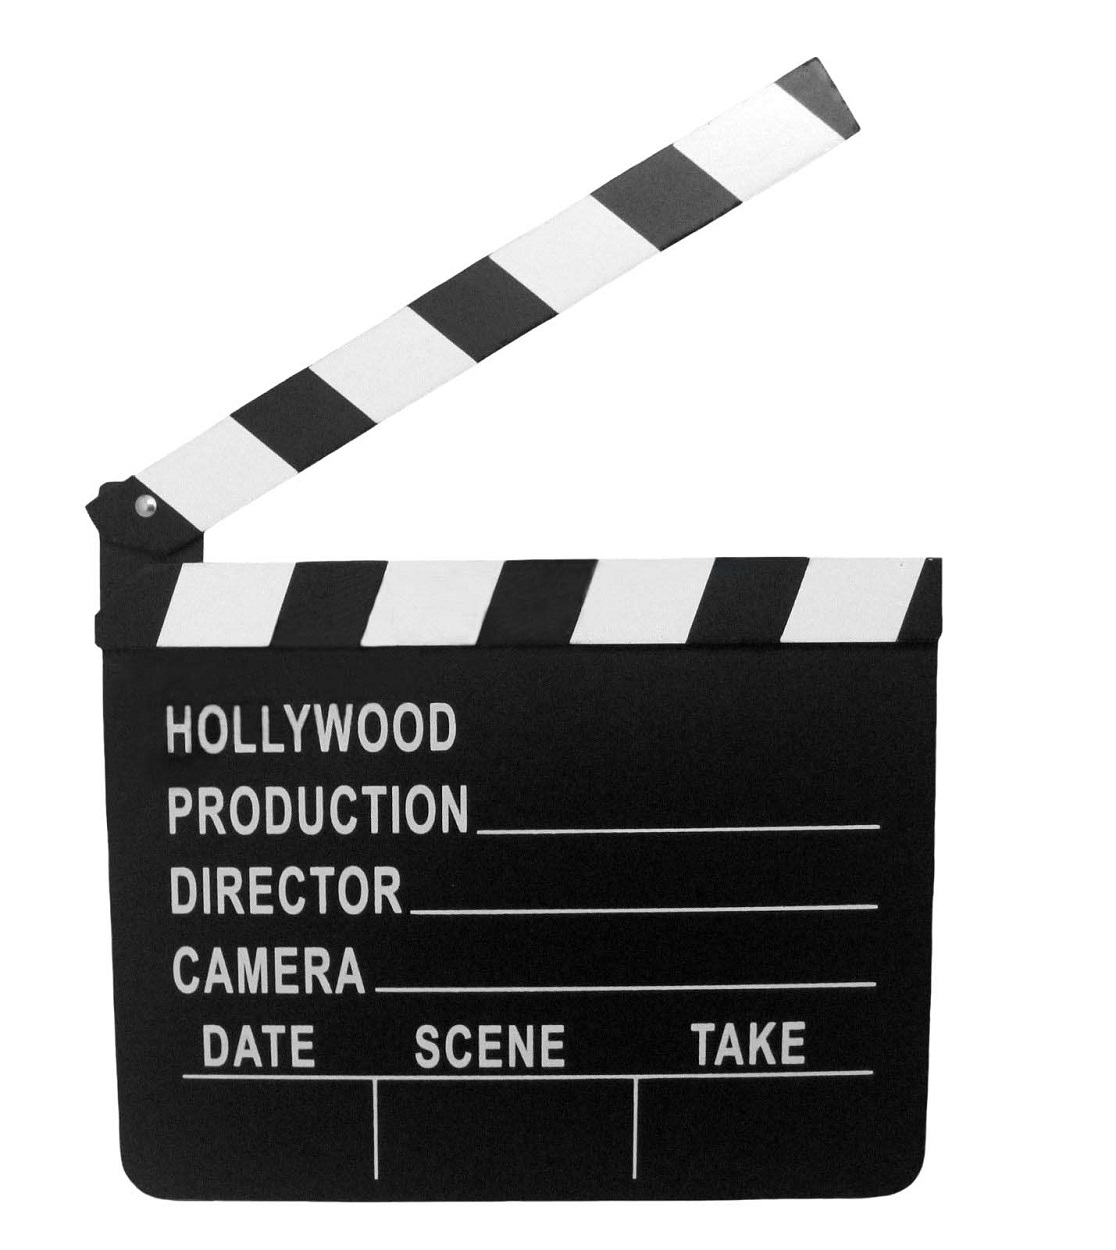 73bdb3f82e2 Details about Movie Prop Director Hollywood Chalk Slate Board Clapper  Costume Accessory Small